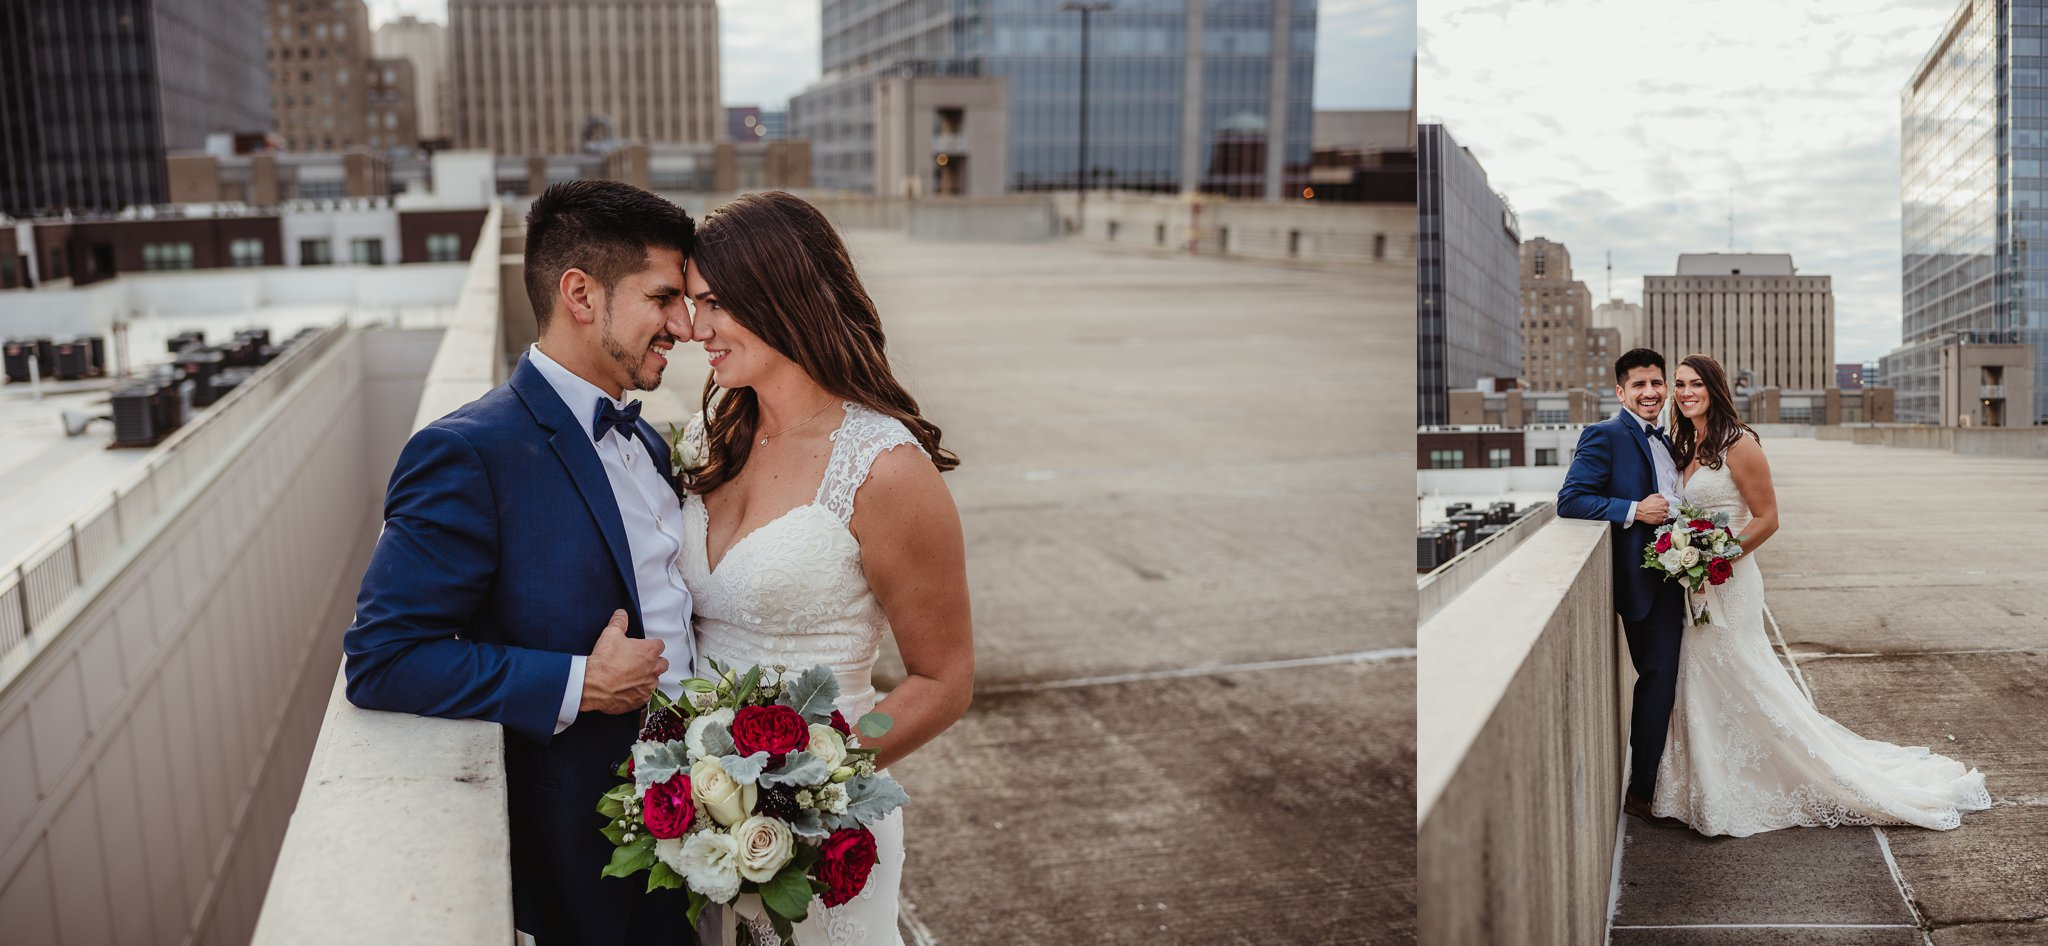 The bride and groom took rooftop portraits outside after their wedding ceremony in downtown Raleigh, photos by Rose Trail Images.